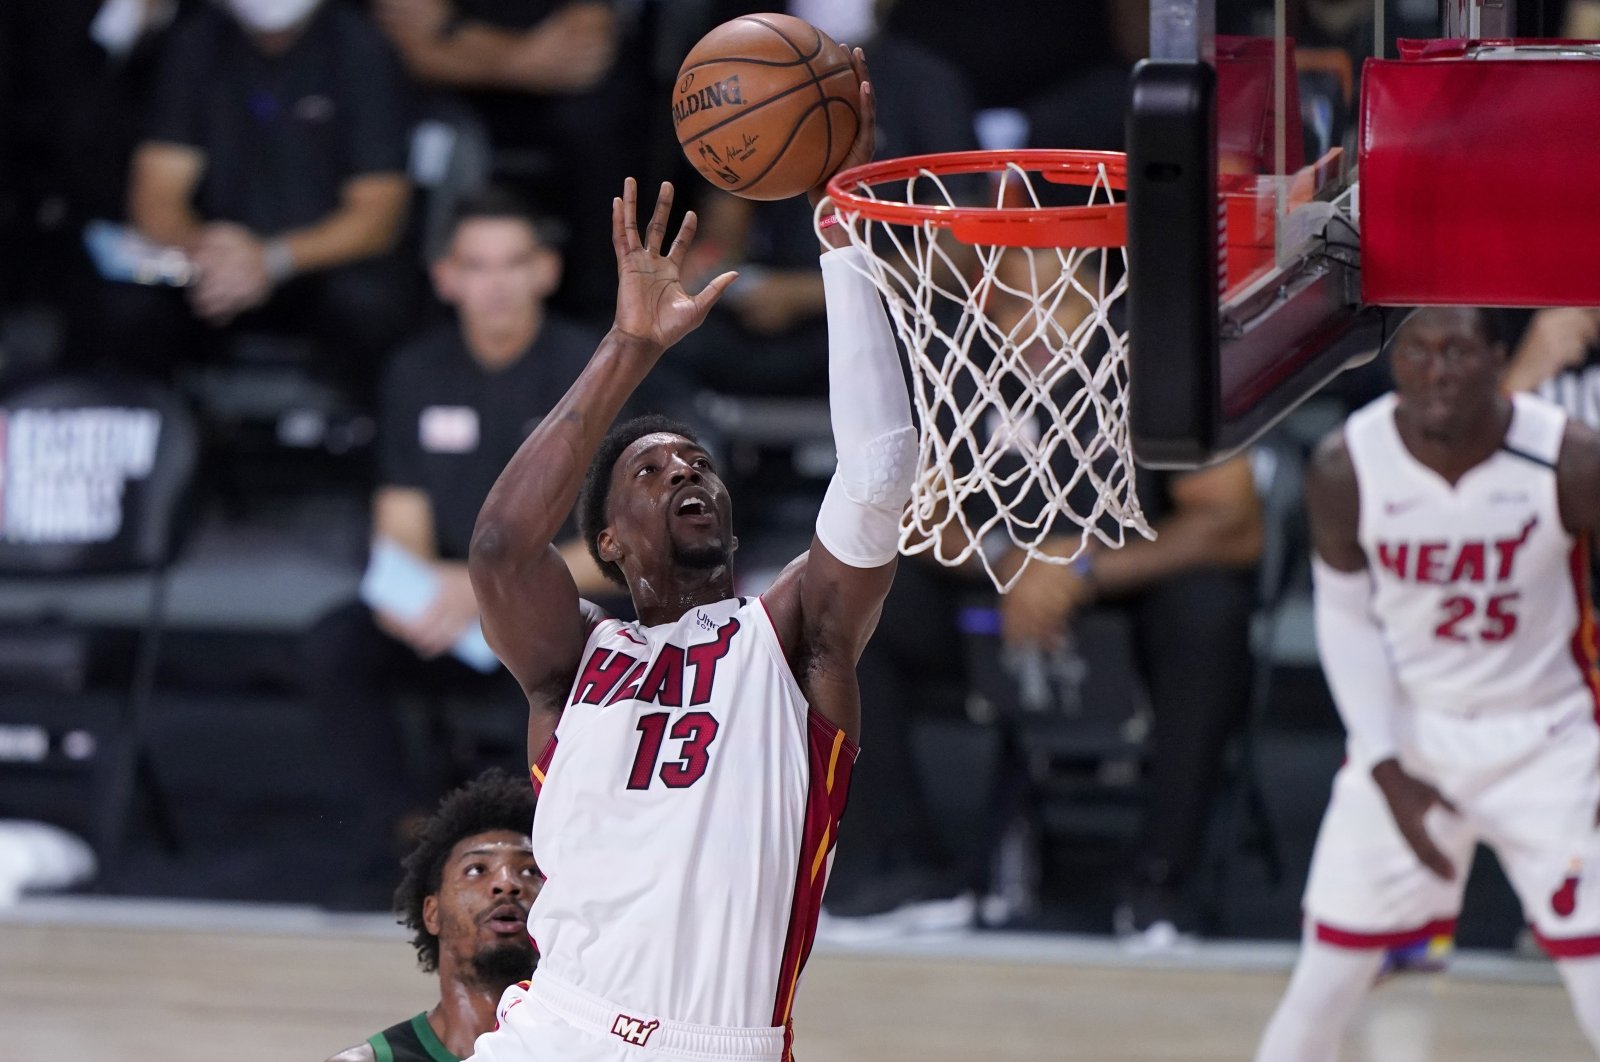 Miami Heat forward Bam Adebayo (13) goes up for a shot after getting past Boston Celtics guard Marcus Smart during an NBA conference final playoff game, in Lake Buena Vista, Florida, U.S., Sept. 17, 2020. (AP Photo)